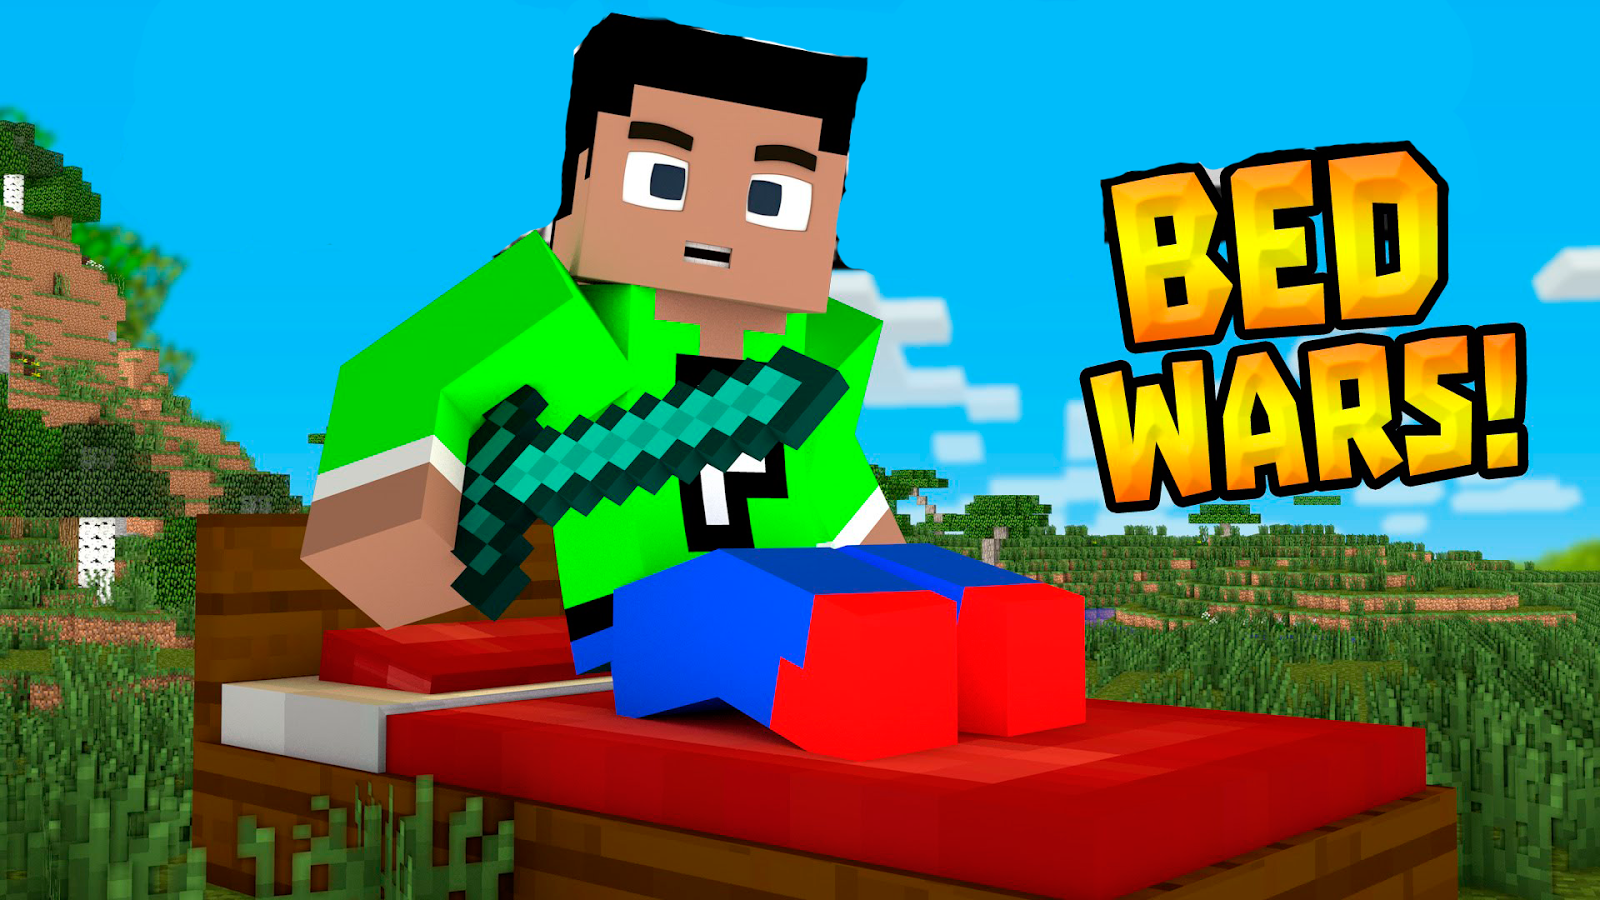 Map Bed Wars for Minecraft MCPE 1 032 APK Download - Android